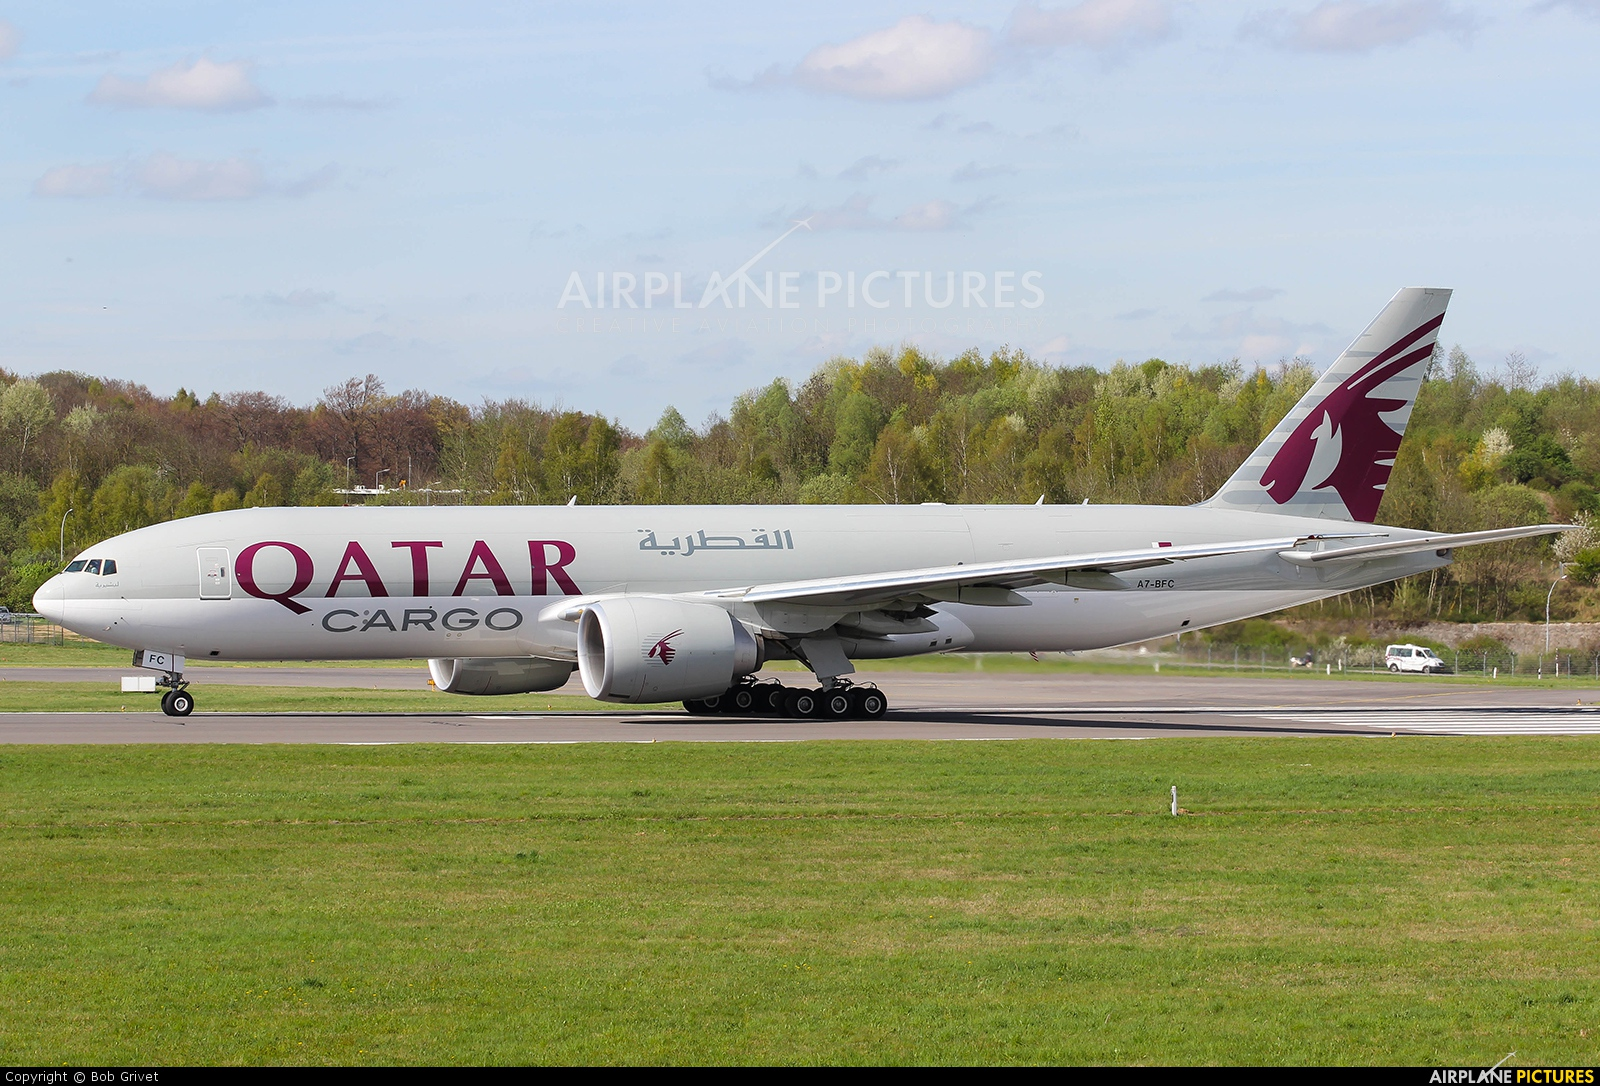 Qatar Airways Cargo A7-BFC aircraft at Luxembourg - Findel